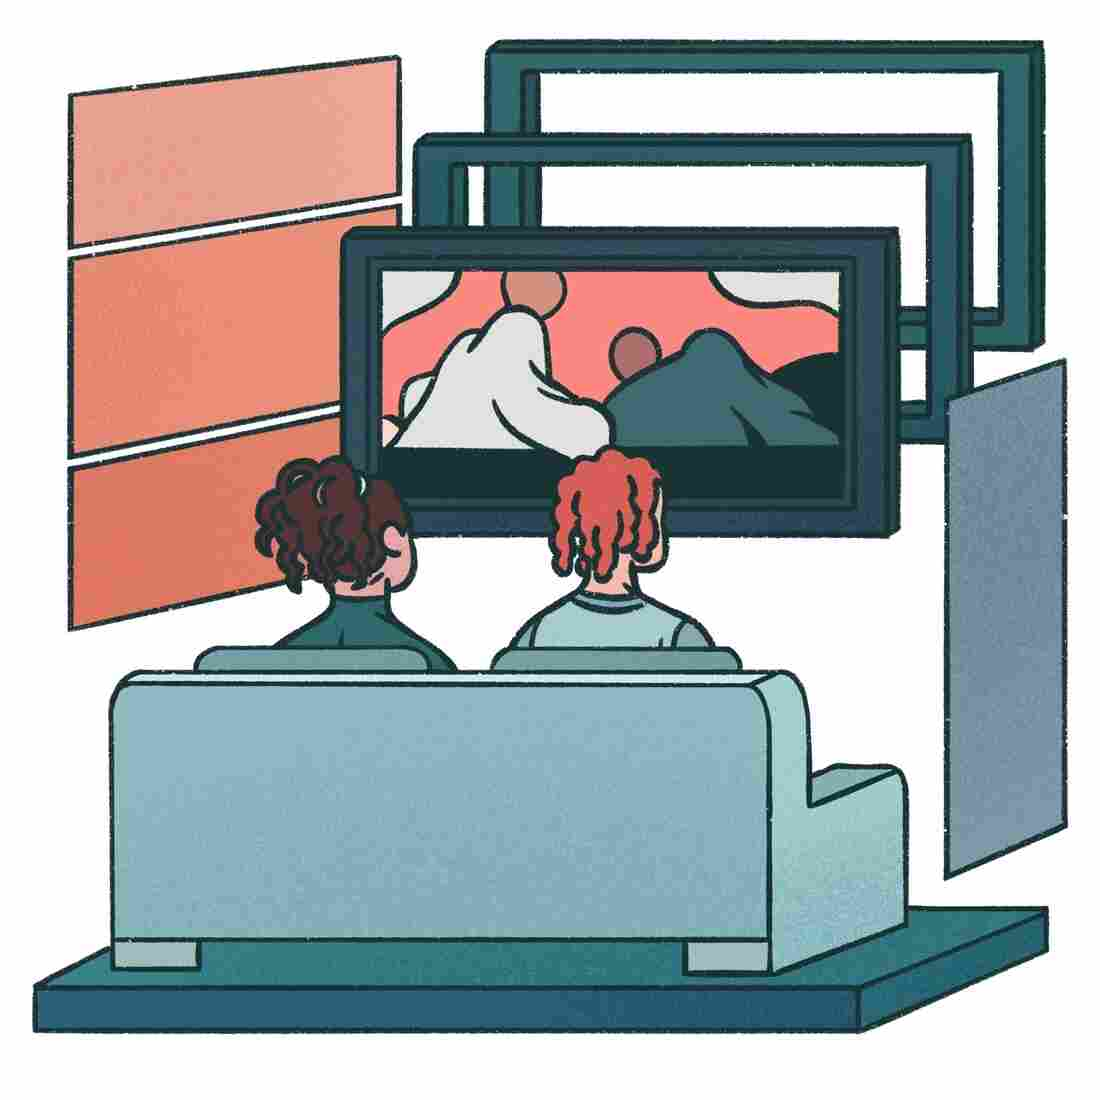 Two friends watch television.